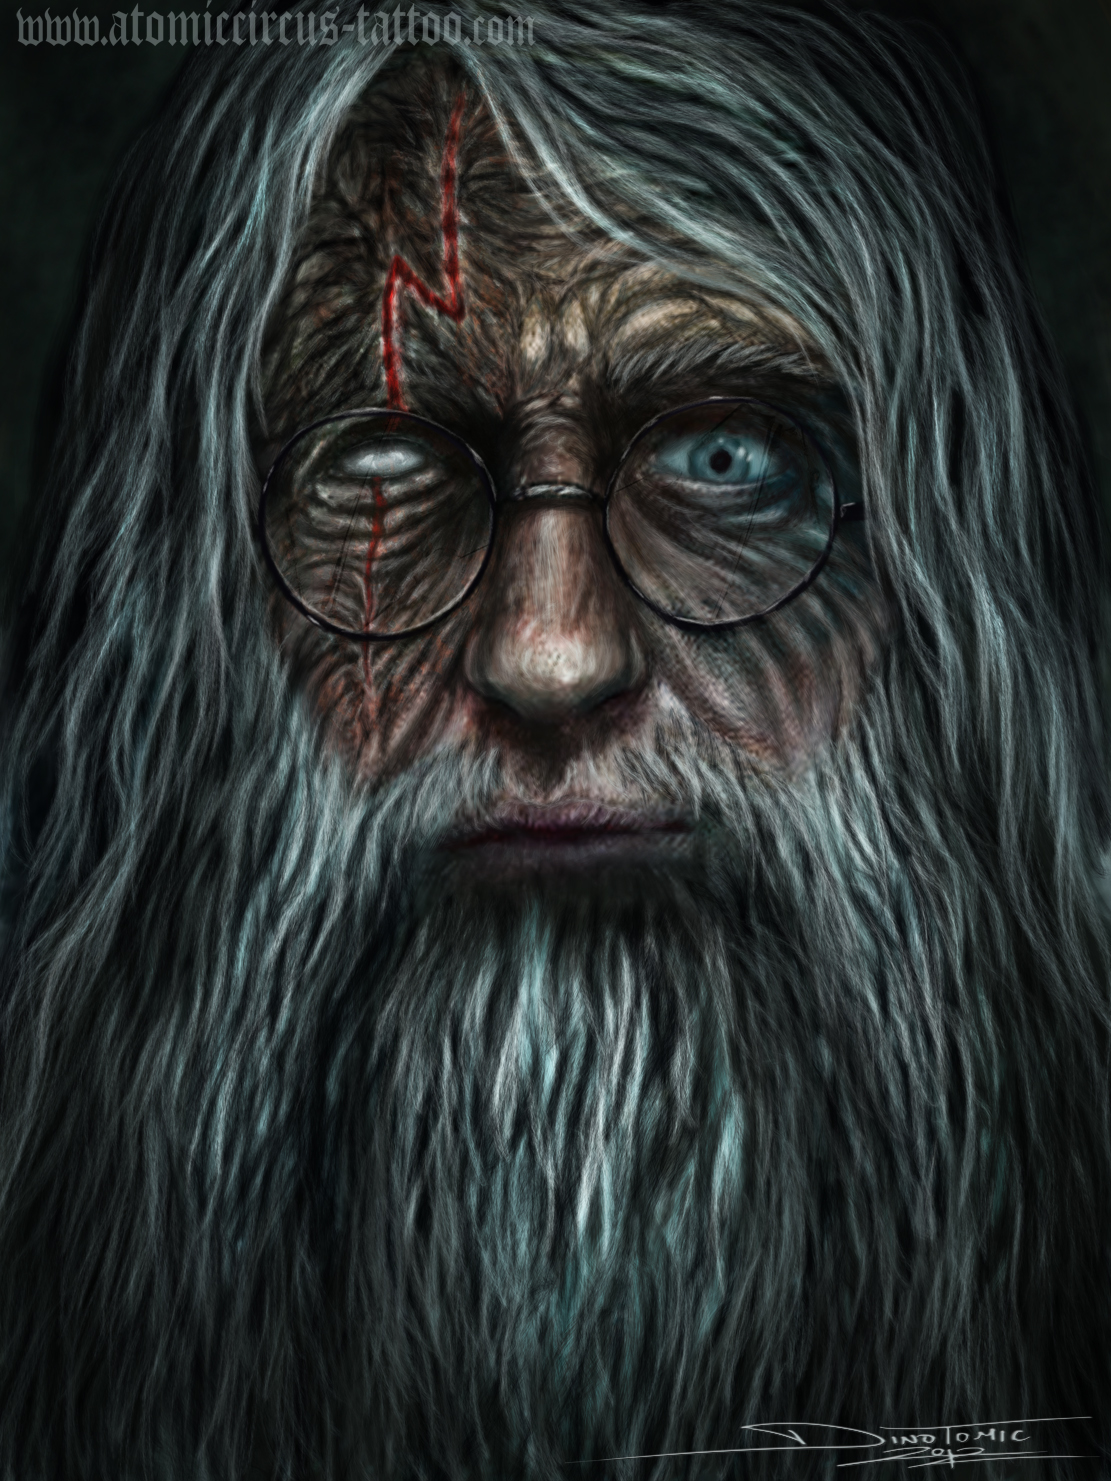 Old Harry Potter By Atomiccircus On Deviantart